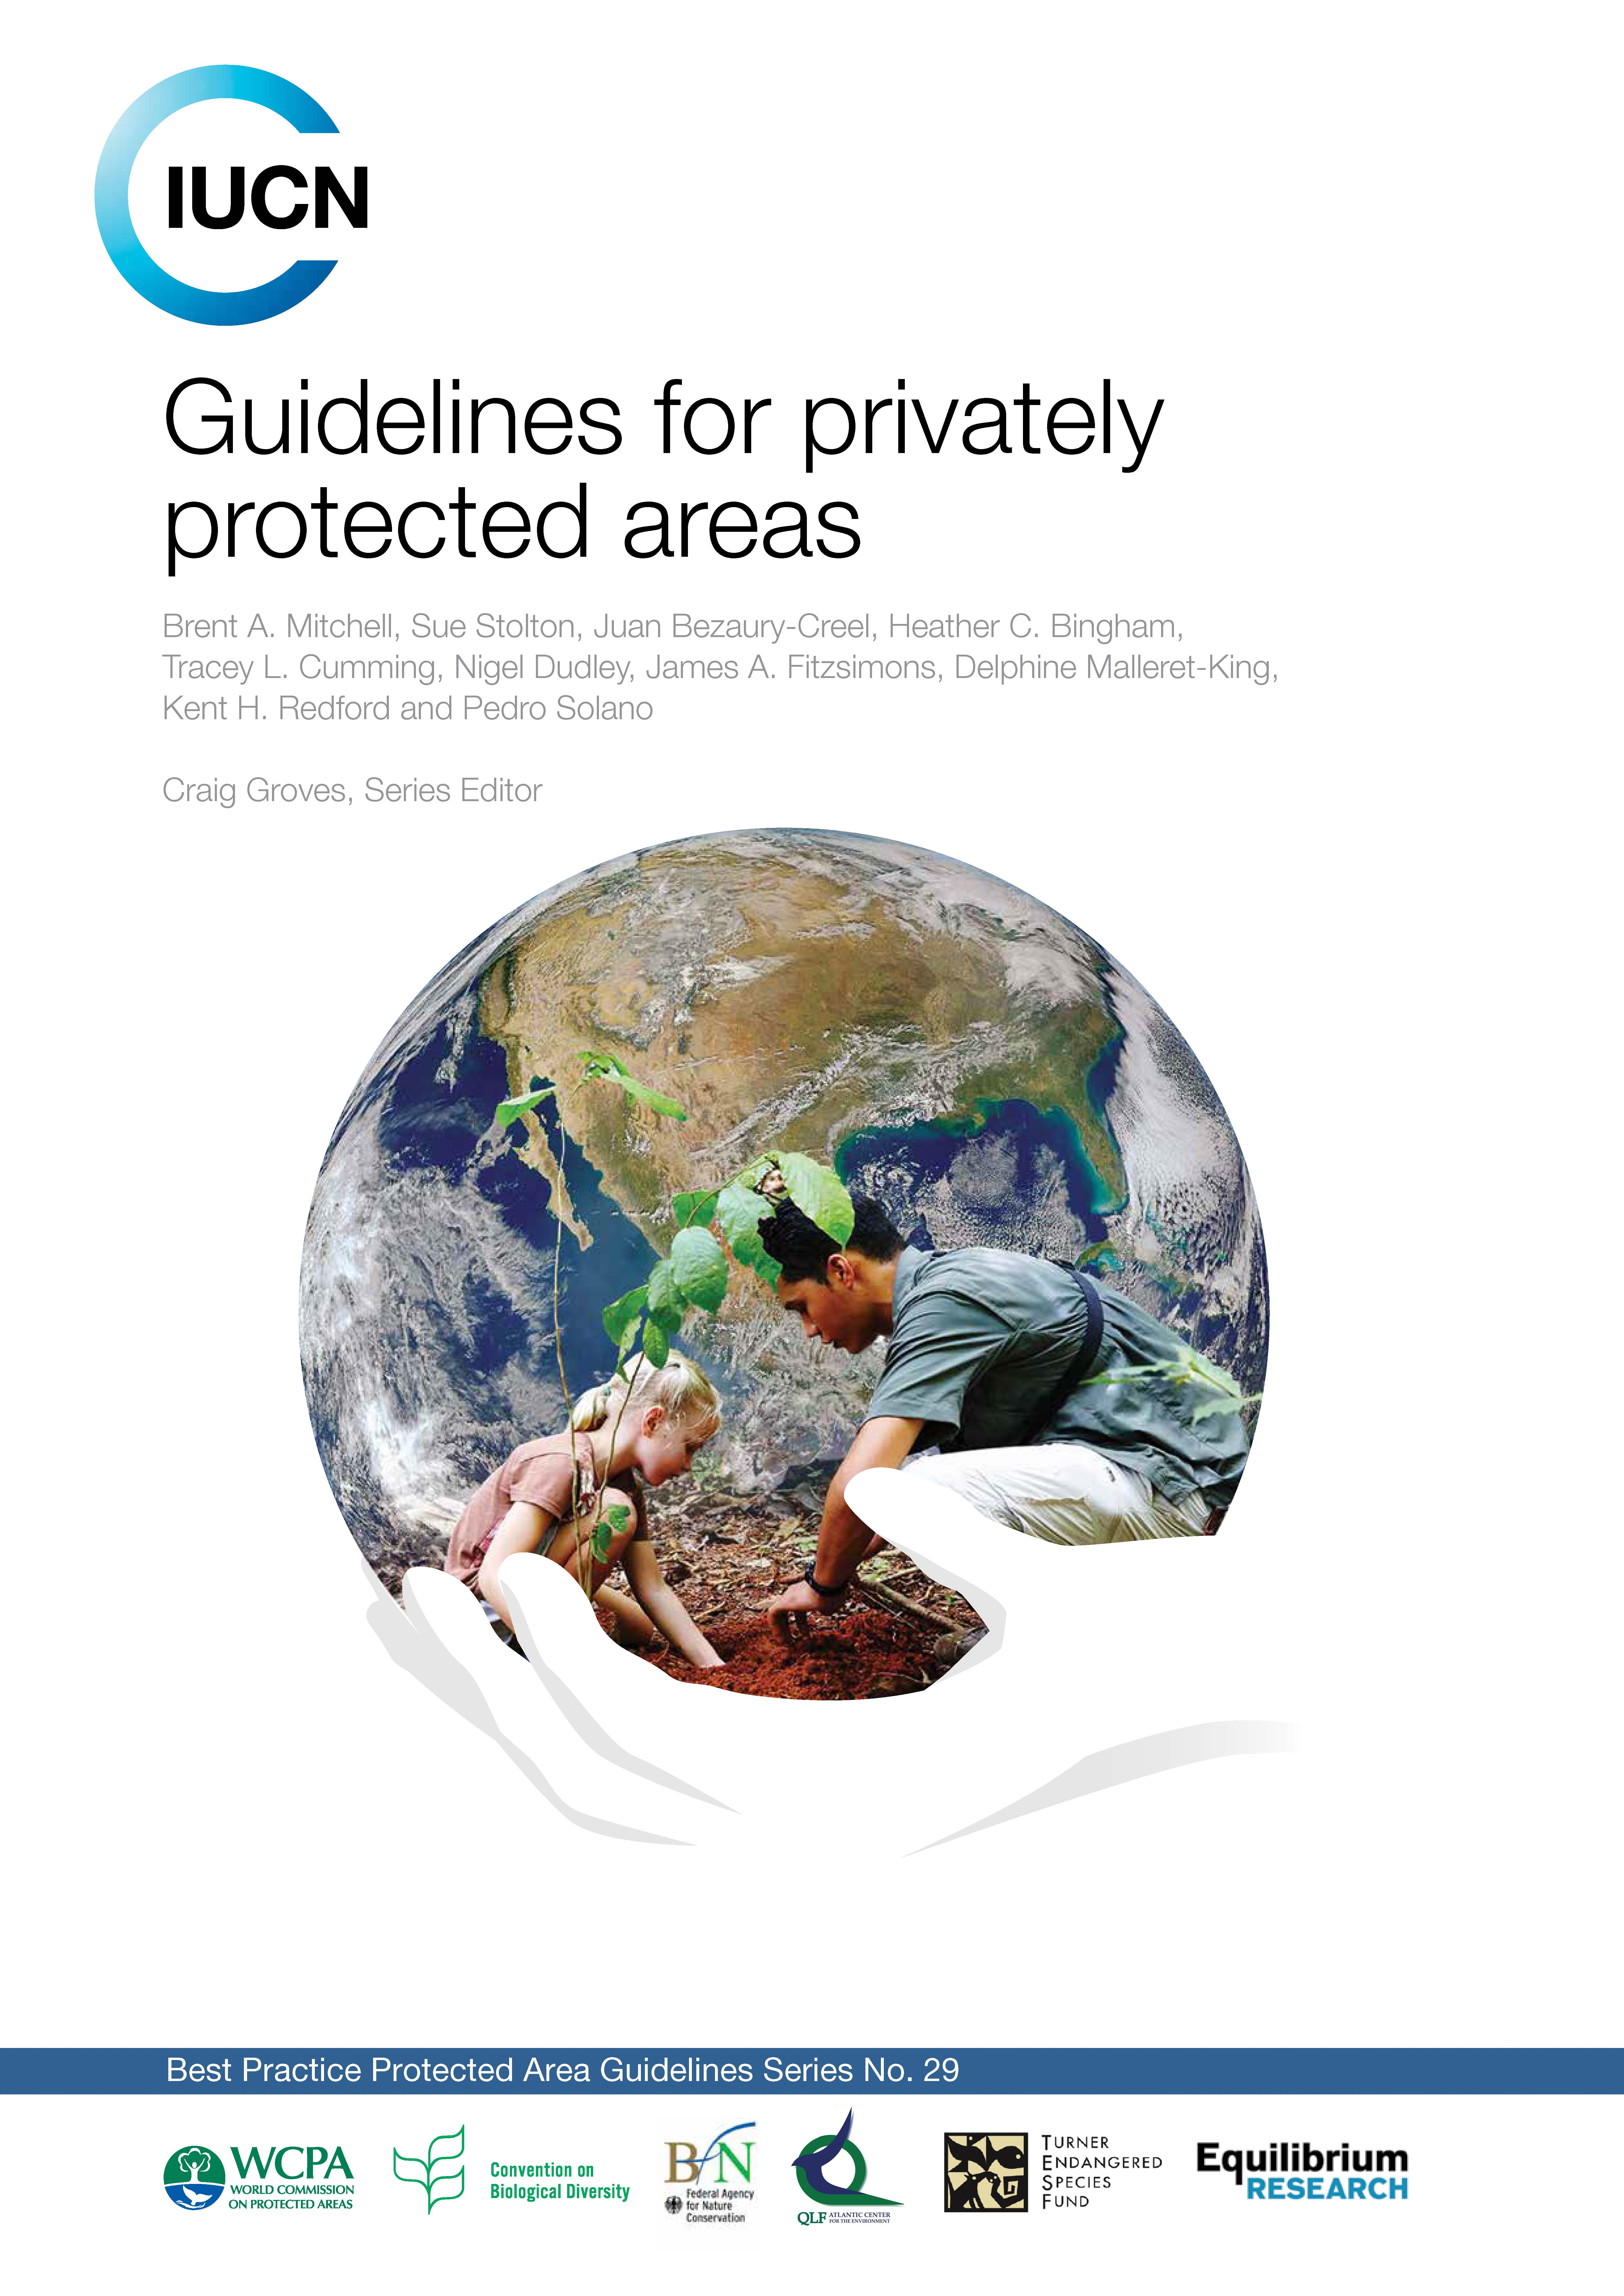 Best Practice Guidelines on Privately Protected Areas